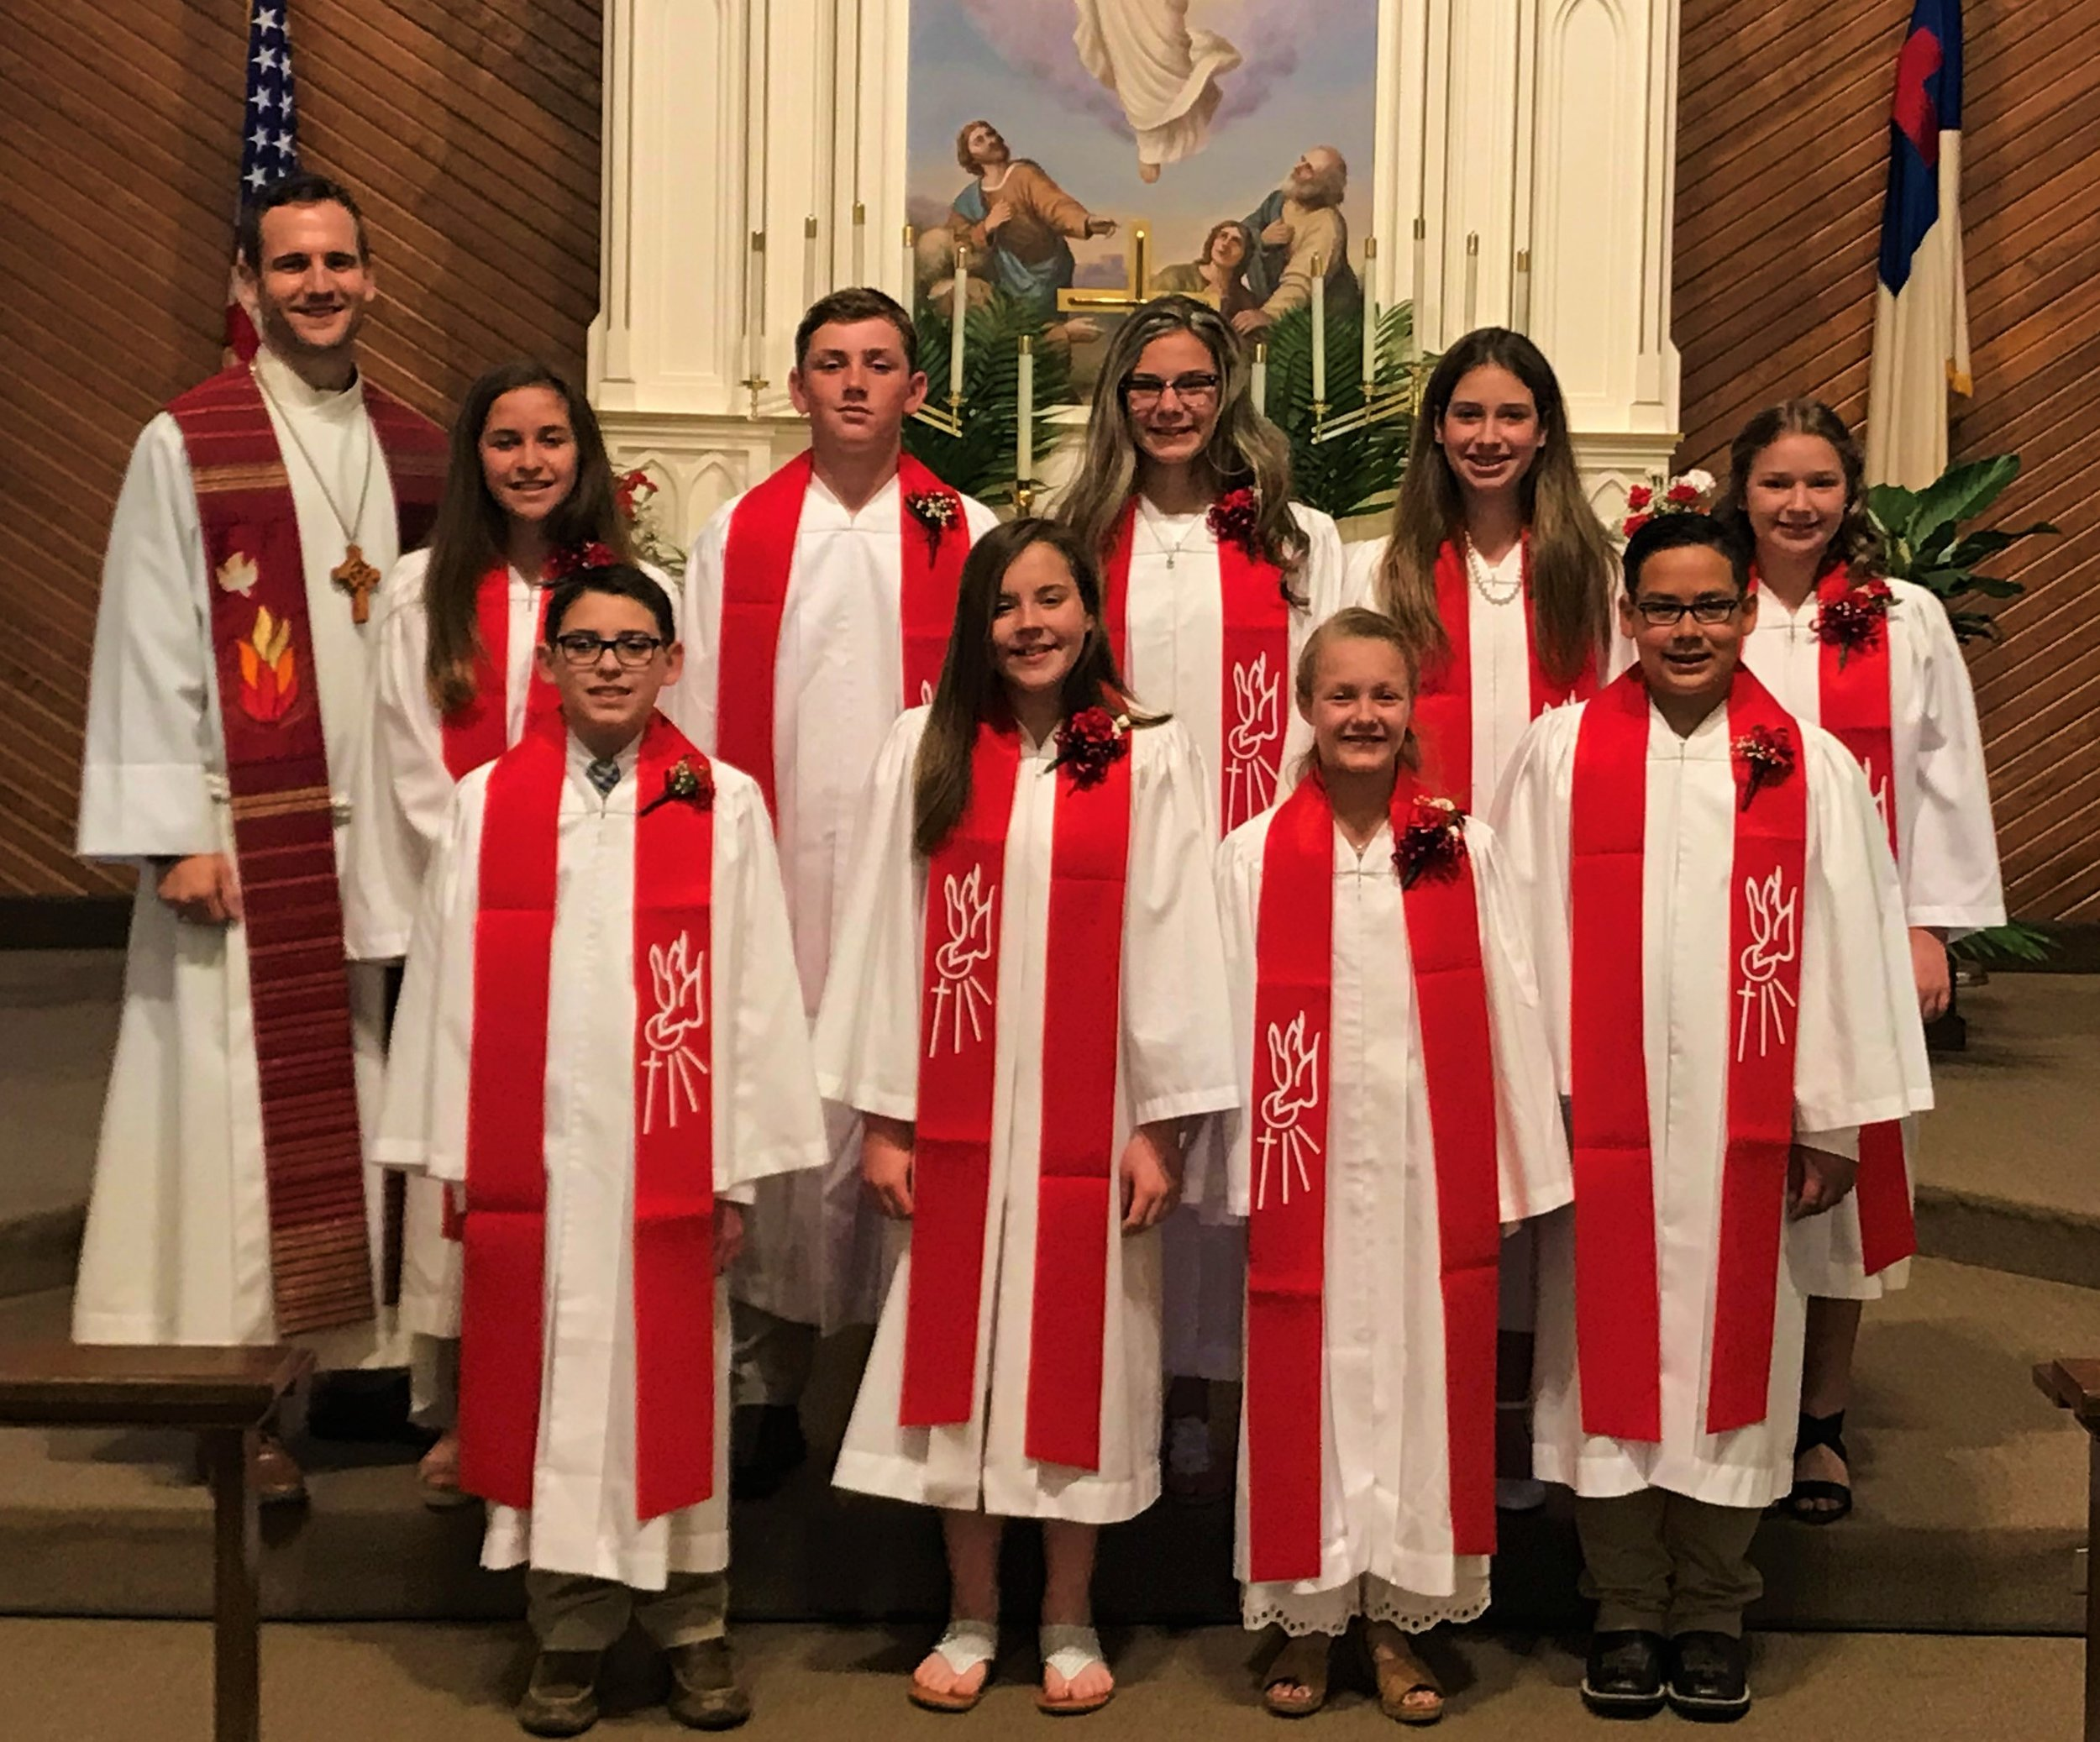 Back Row Left to Right - Pastor Aaron Kalbas, Jenna Frias, Jack Herzog, Emily Reeves, Madison Masek, Lily Churchman  Front Row Left to Right - Patrick Zieschang, Haleigh Moehling, Hannah Fisher, Nick Ramirez